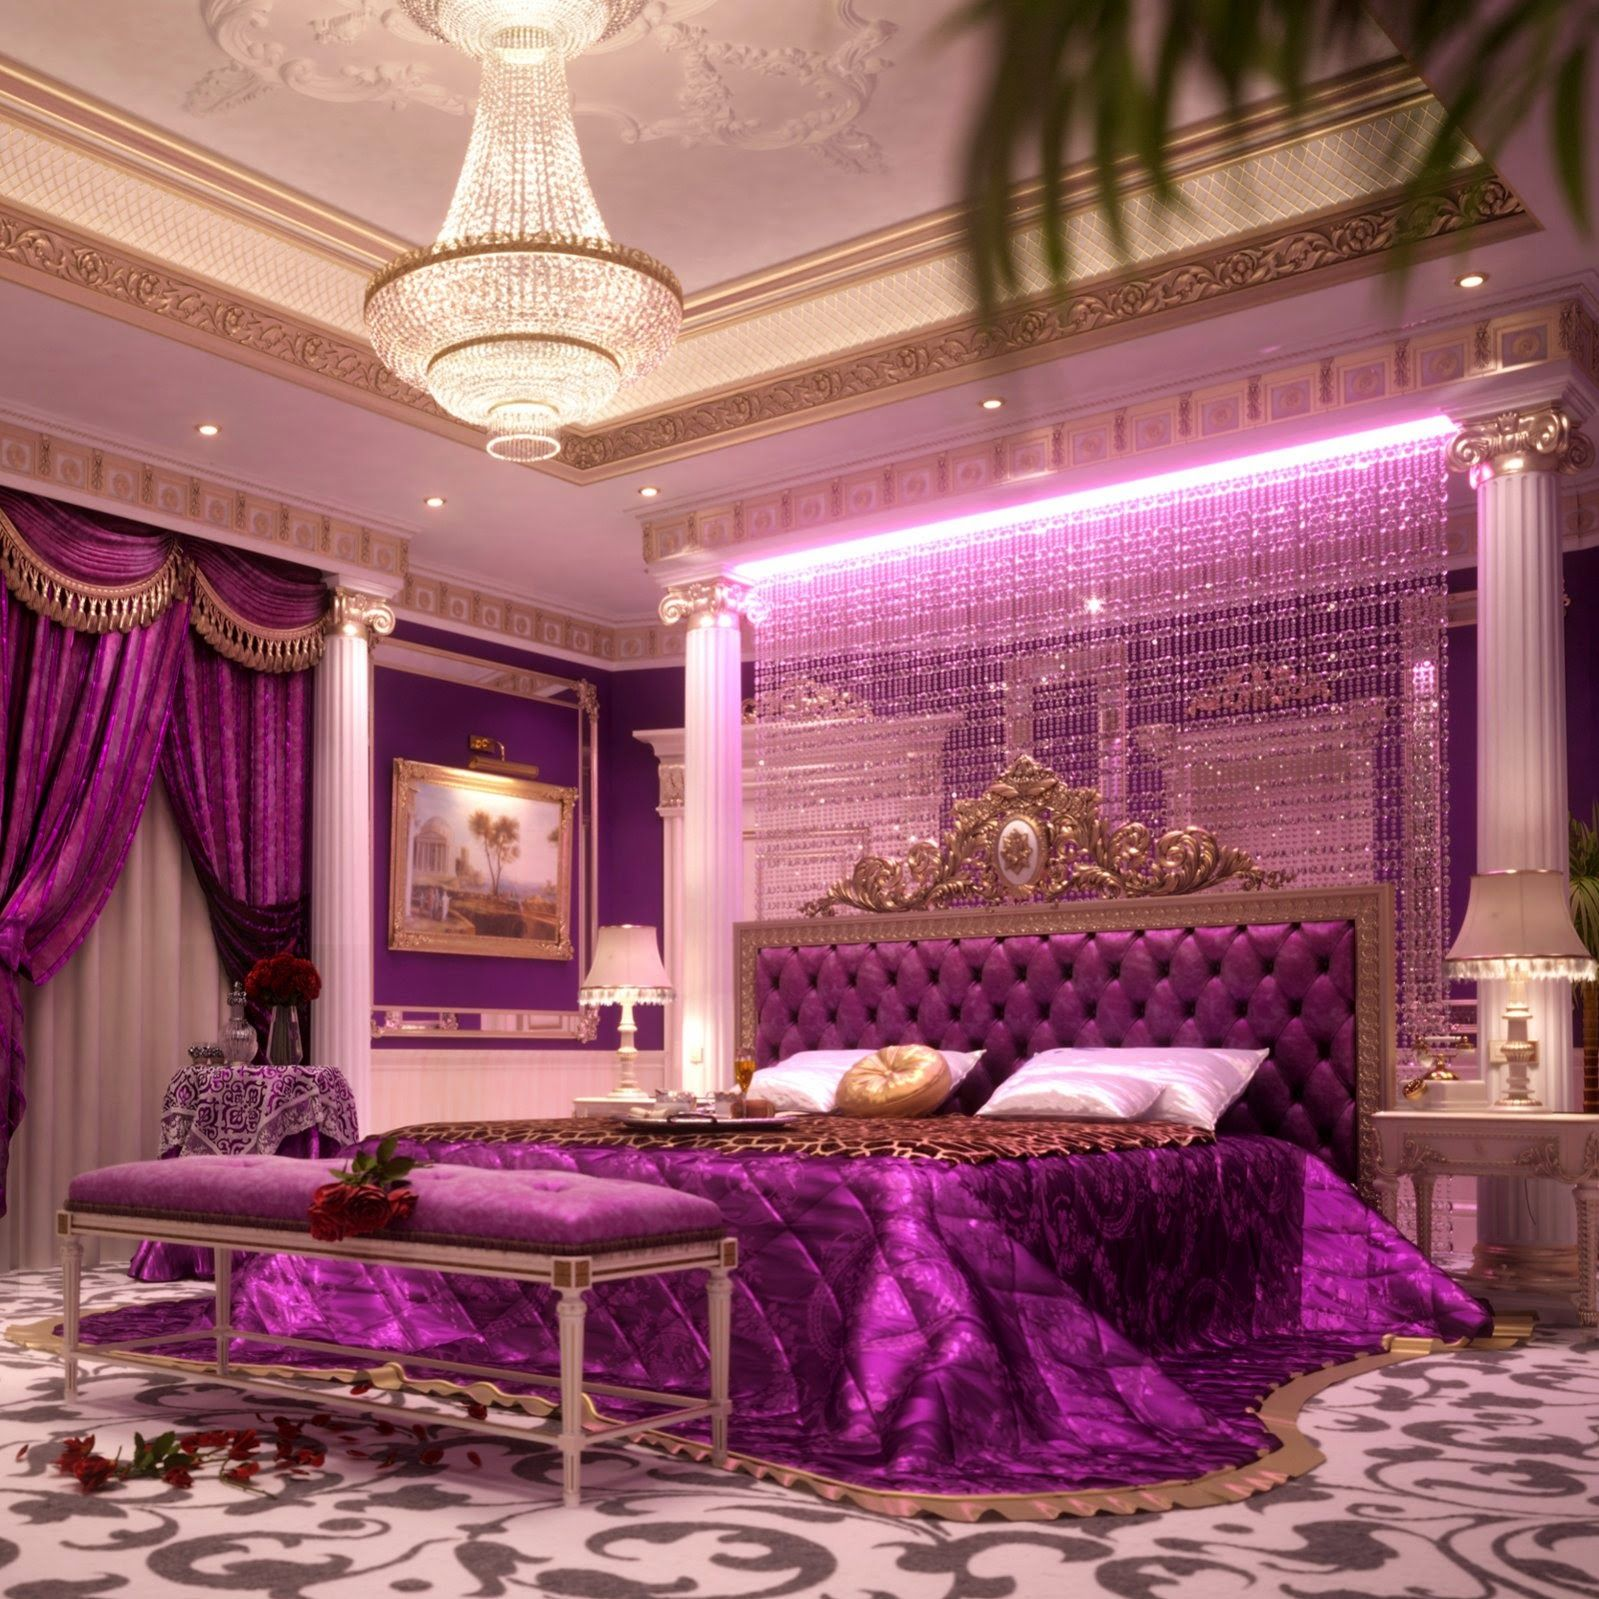 Image Result For Royal Bedroom